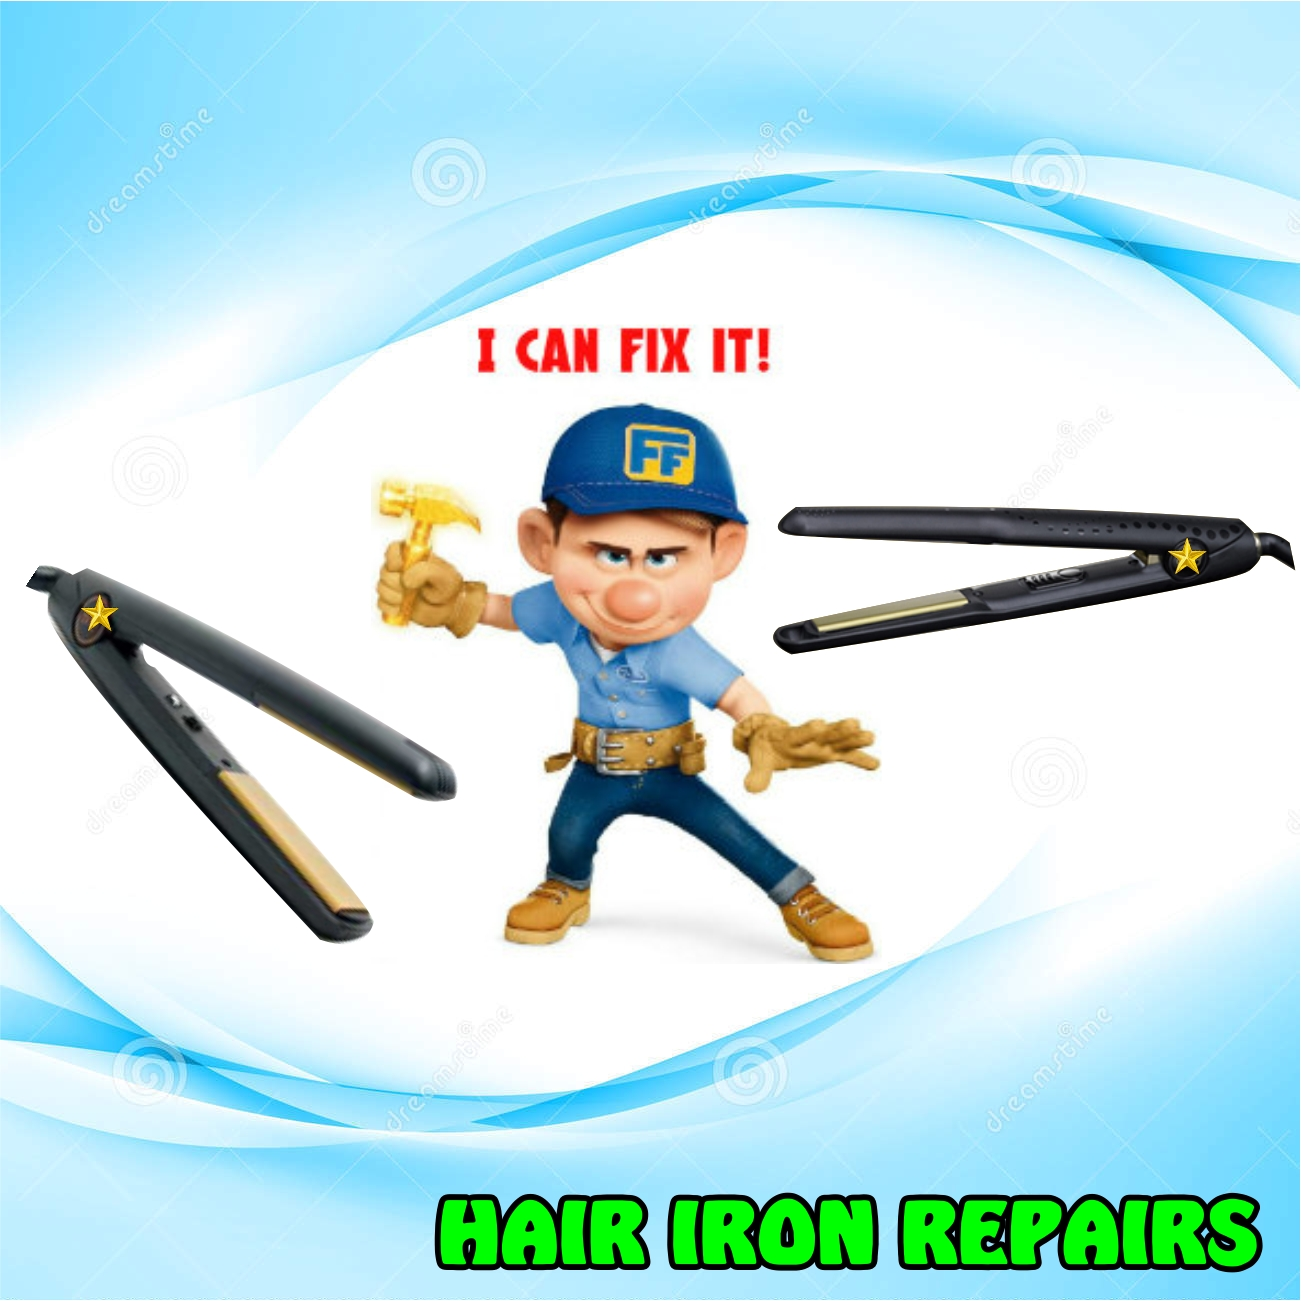 CLICK ME  ELECTRONIC AUDIO SOUND REPAIRS HAIR IRON REPAIRS GRAVITY DURBAN 0315072463 GHD REPAIRS CLOUD9 IRON REPAIRS CLOUD 9 HAIR IRONS REPAIRS CLOUD NINE CLOUDNINE IRON REPAIRS IN SOUTH AFRICA DURBAN 0315072736